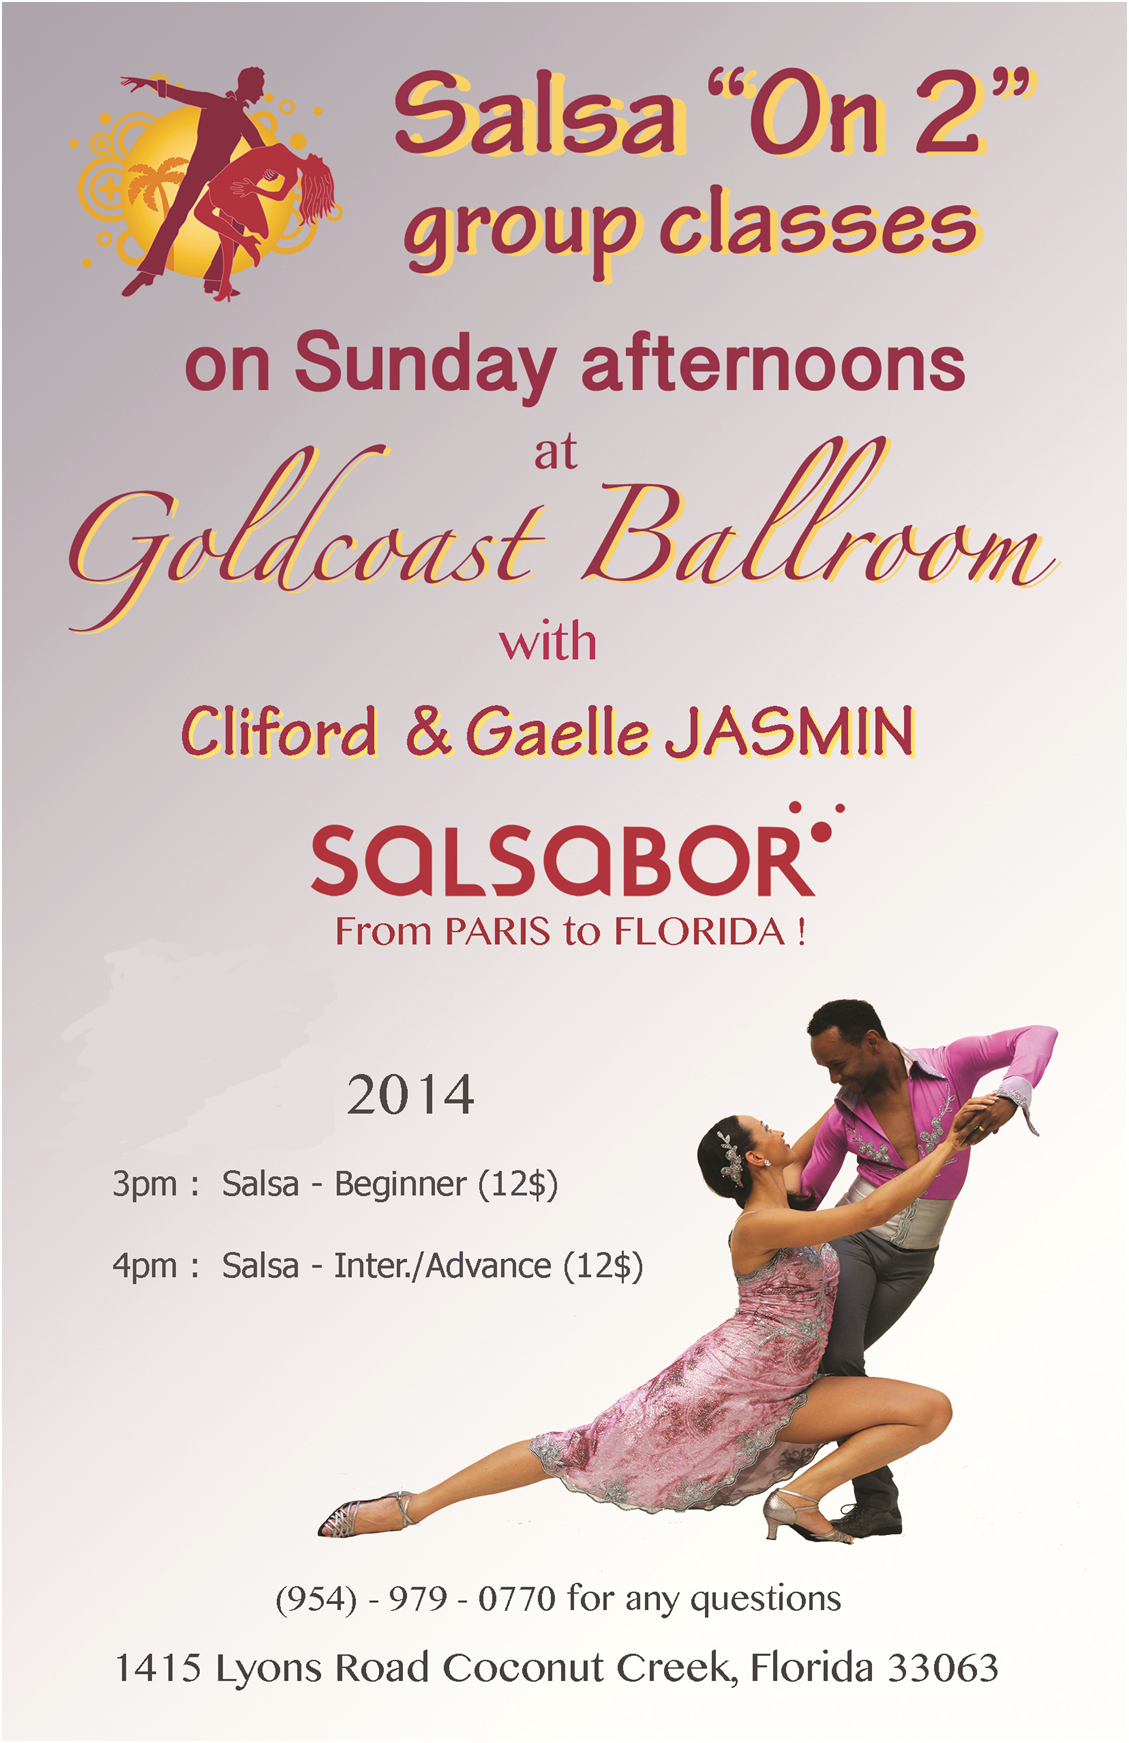 Salsa on 2 - 2014 - Sundays at Goldcoast Ballroom